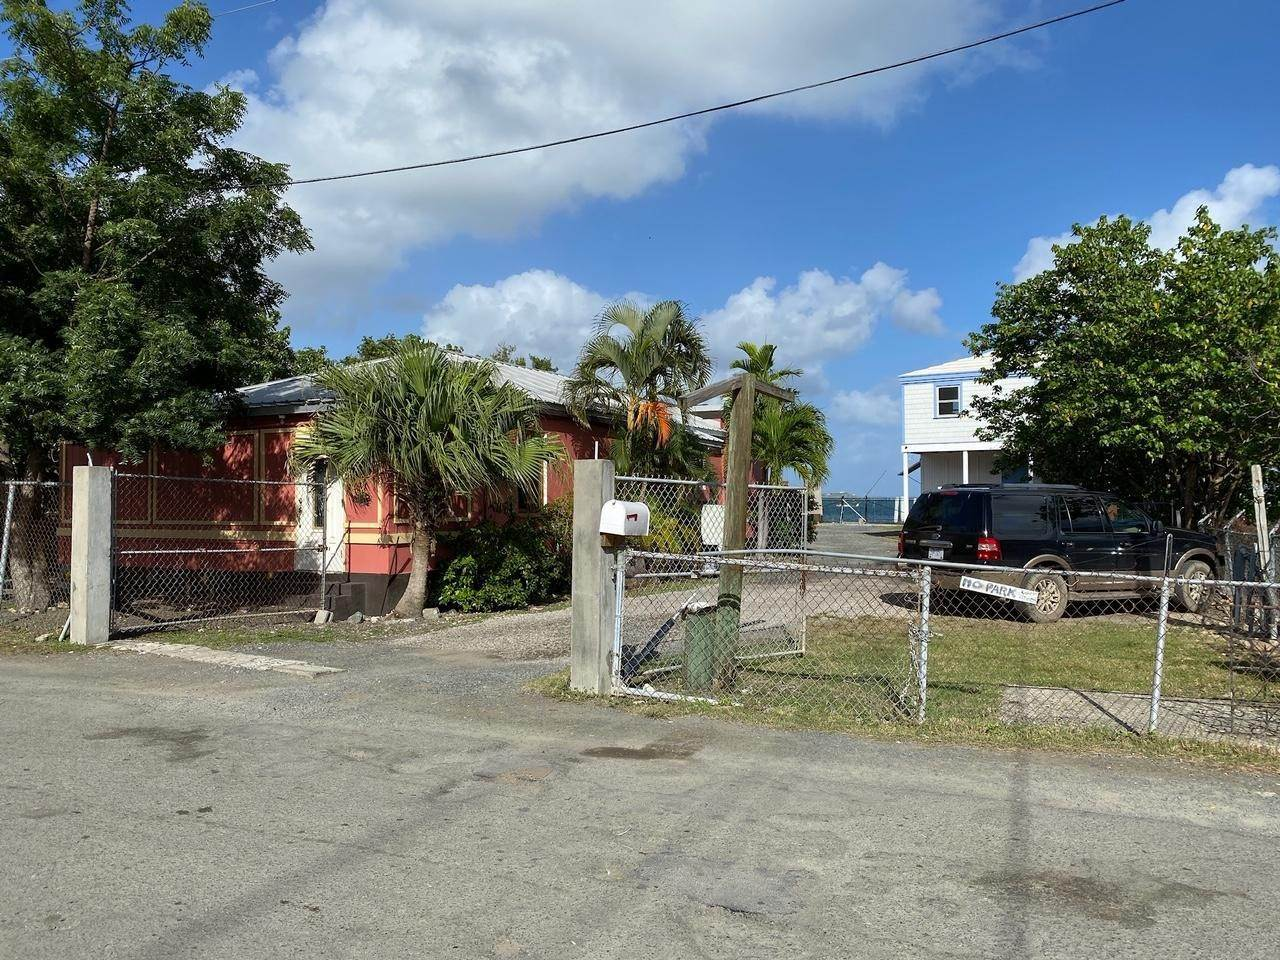 Commercial for Sale at 31E King Cross Str CH St Croix, Virgin Islands 00820 United States Virgin Islands